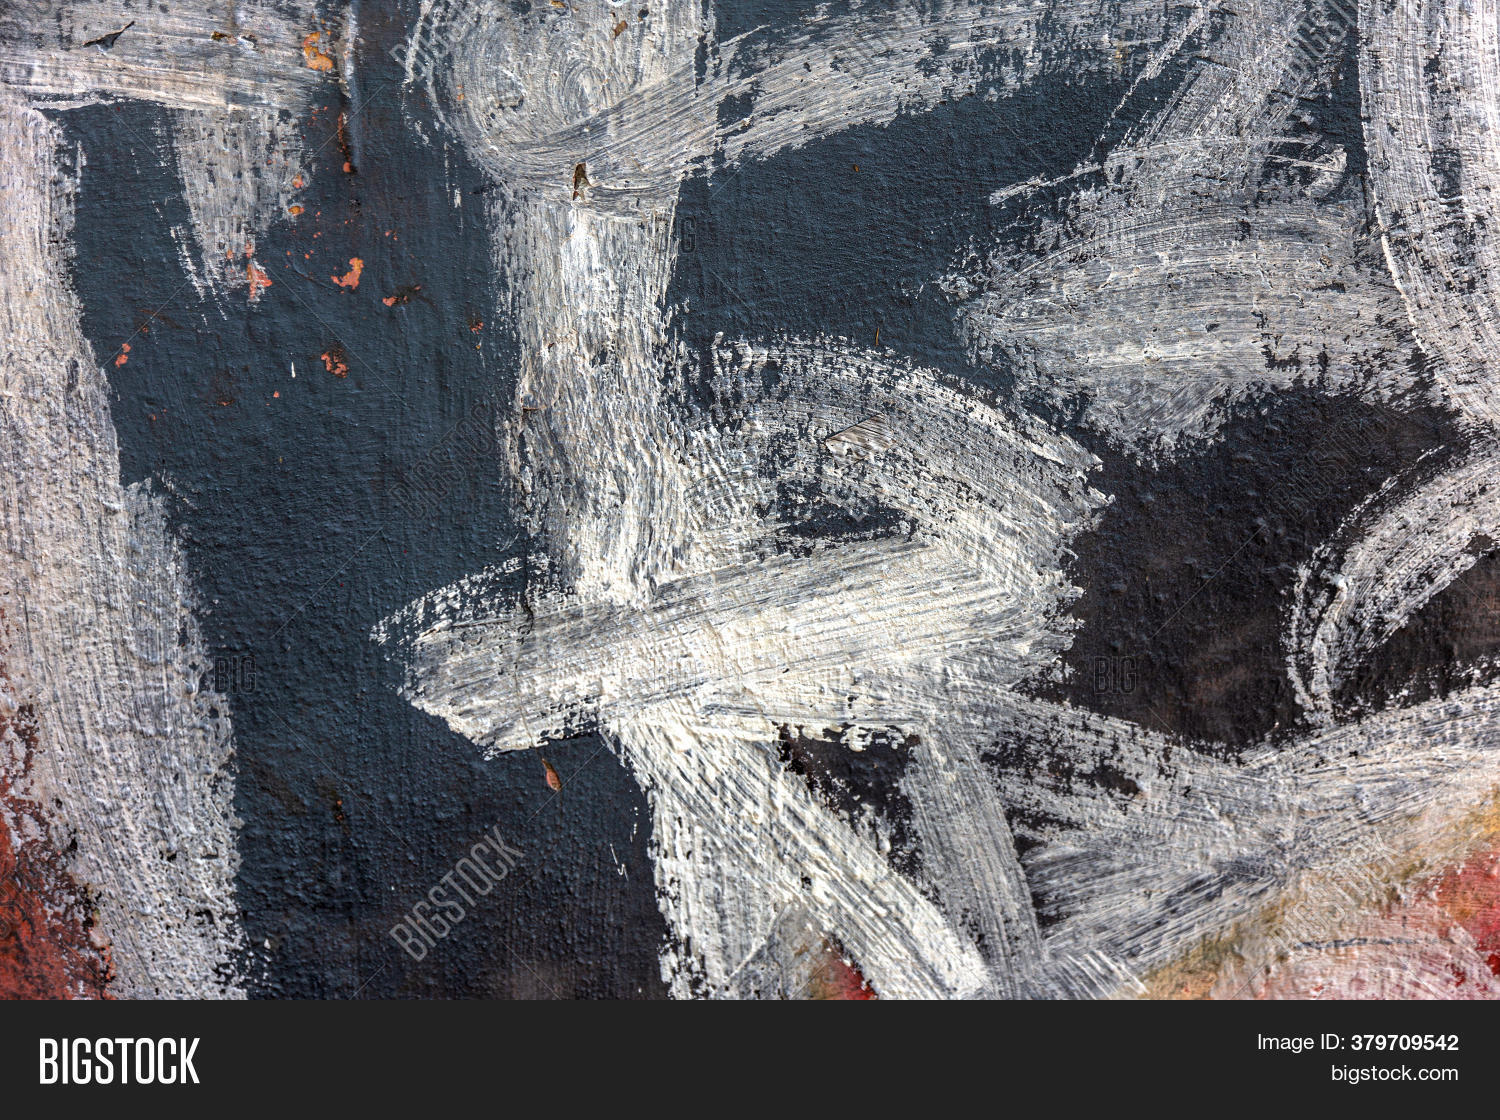 Abstract Background Image Photo Free Trial Bigstock